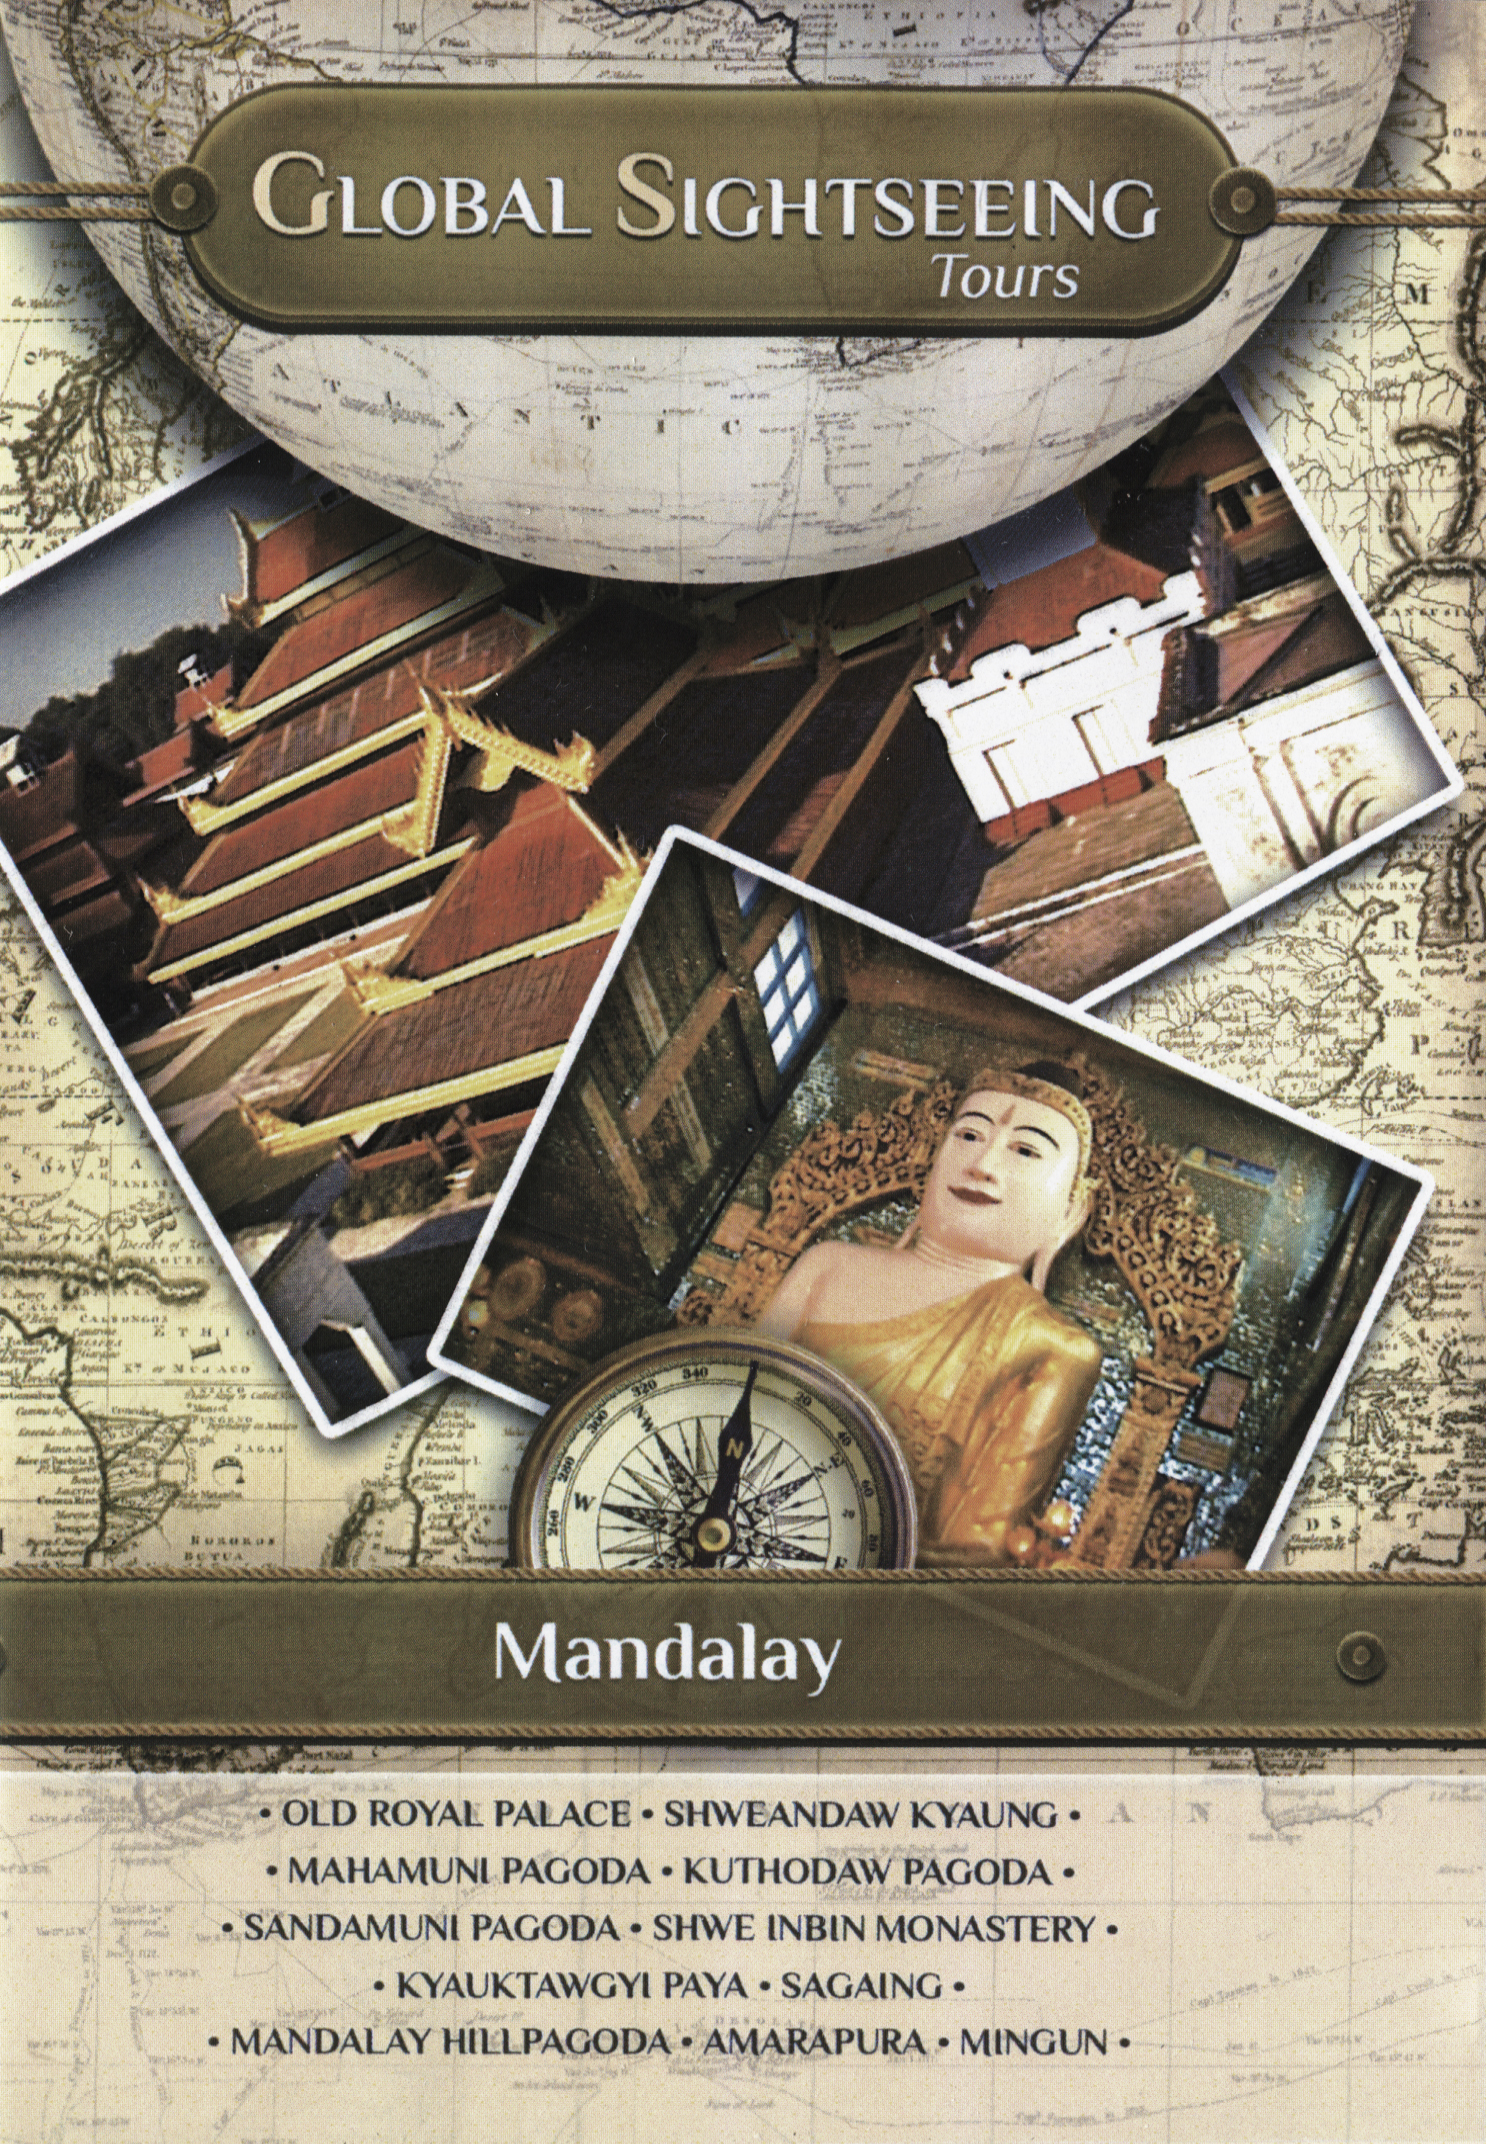 Global Sightseeing Tours: Mandalay